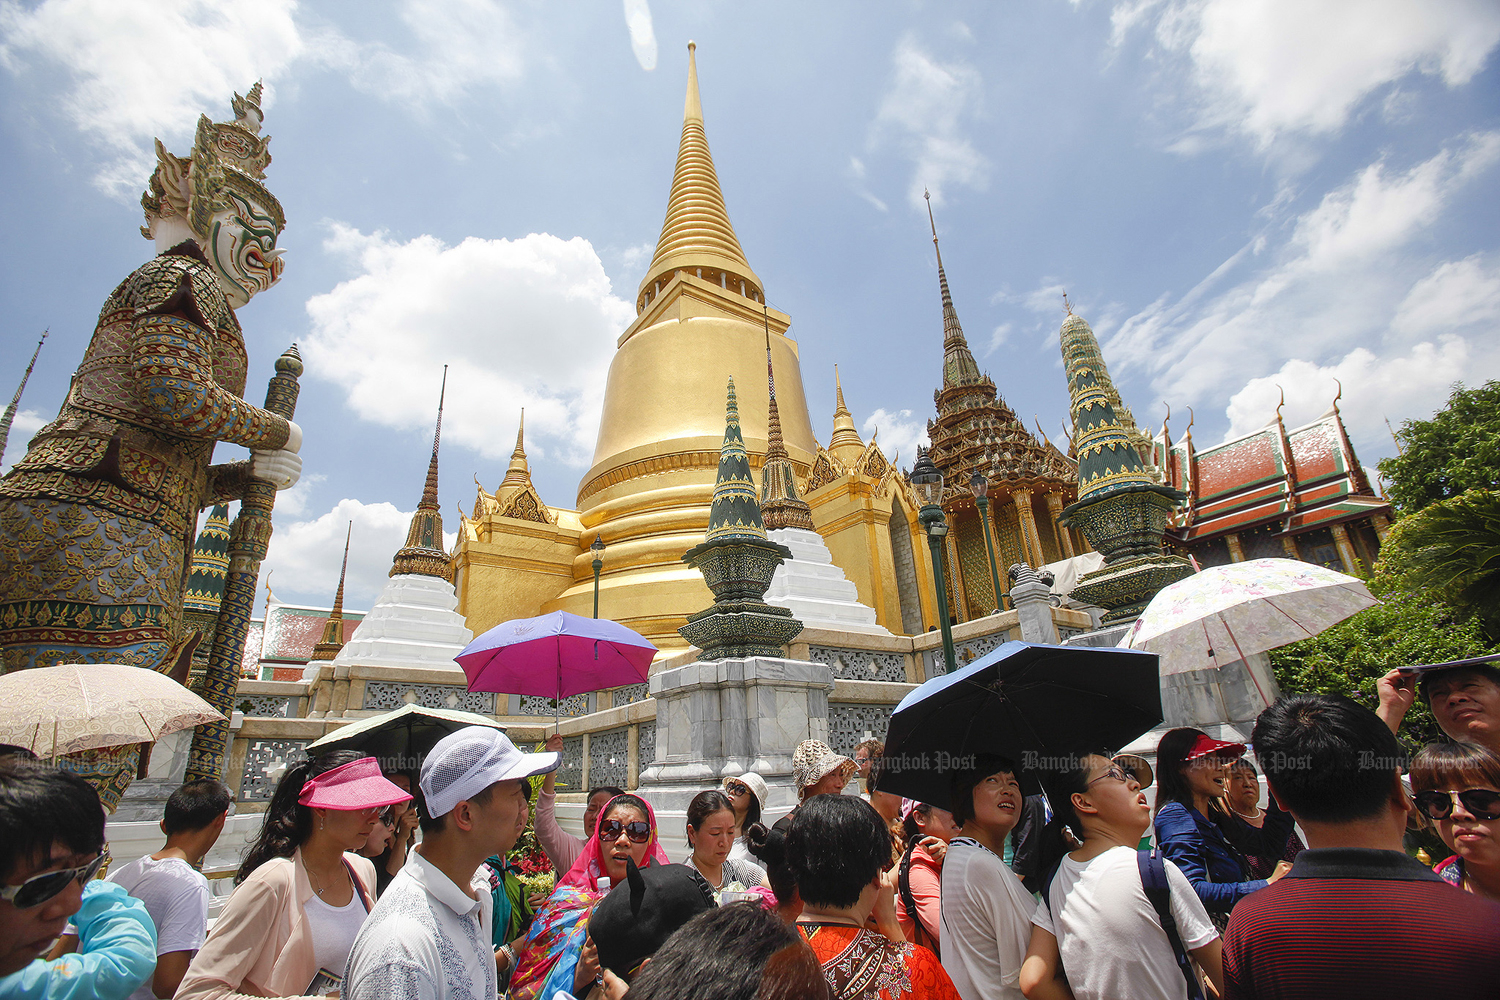 Long-stay tourists planning to visit Thailand must be coming from low Covid-19 risk countries, the Foreign Ministry said. (Bangkok Post photo)